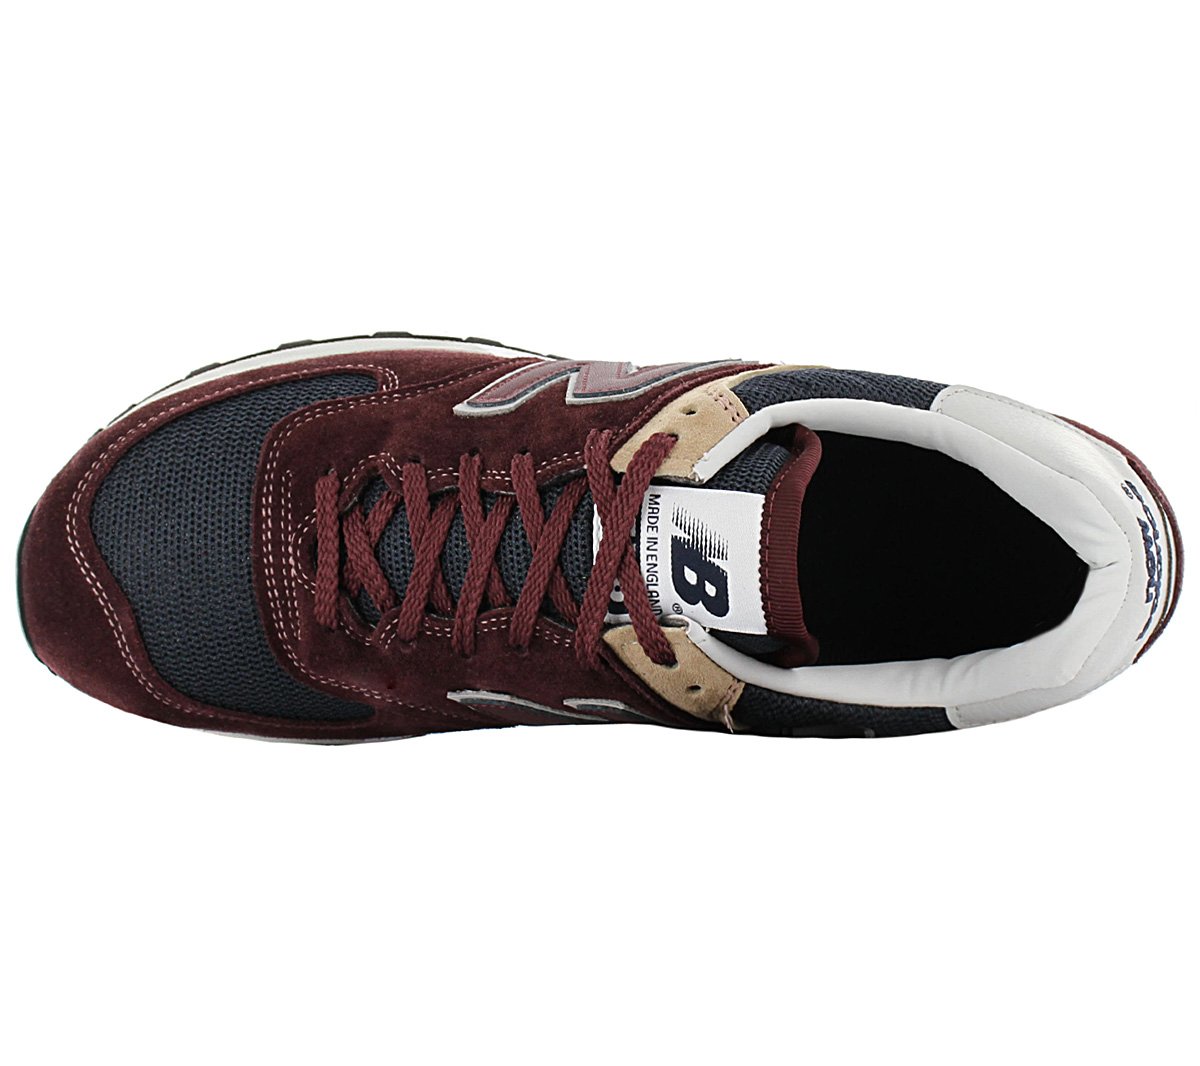 Details about New Balance 576 Made in England OM576OBN Men's Sneakers Shoes Trainers New